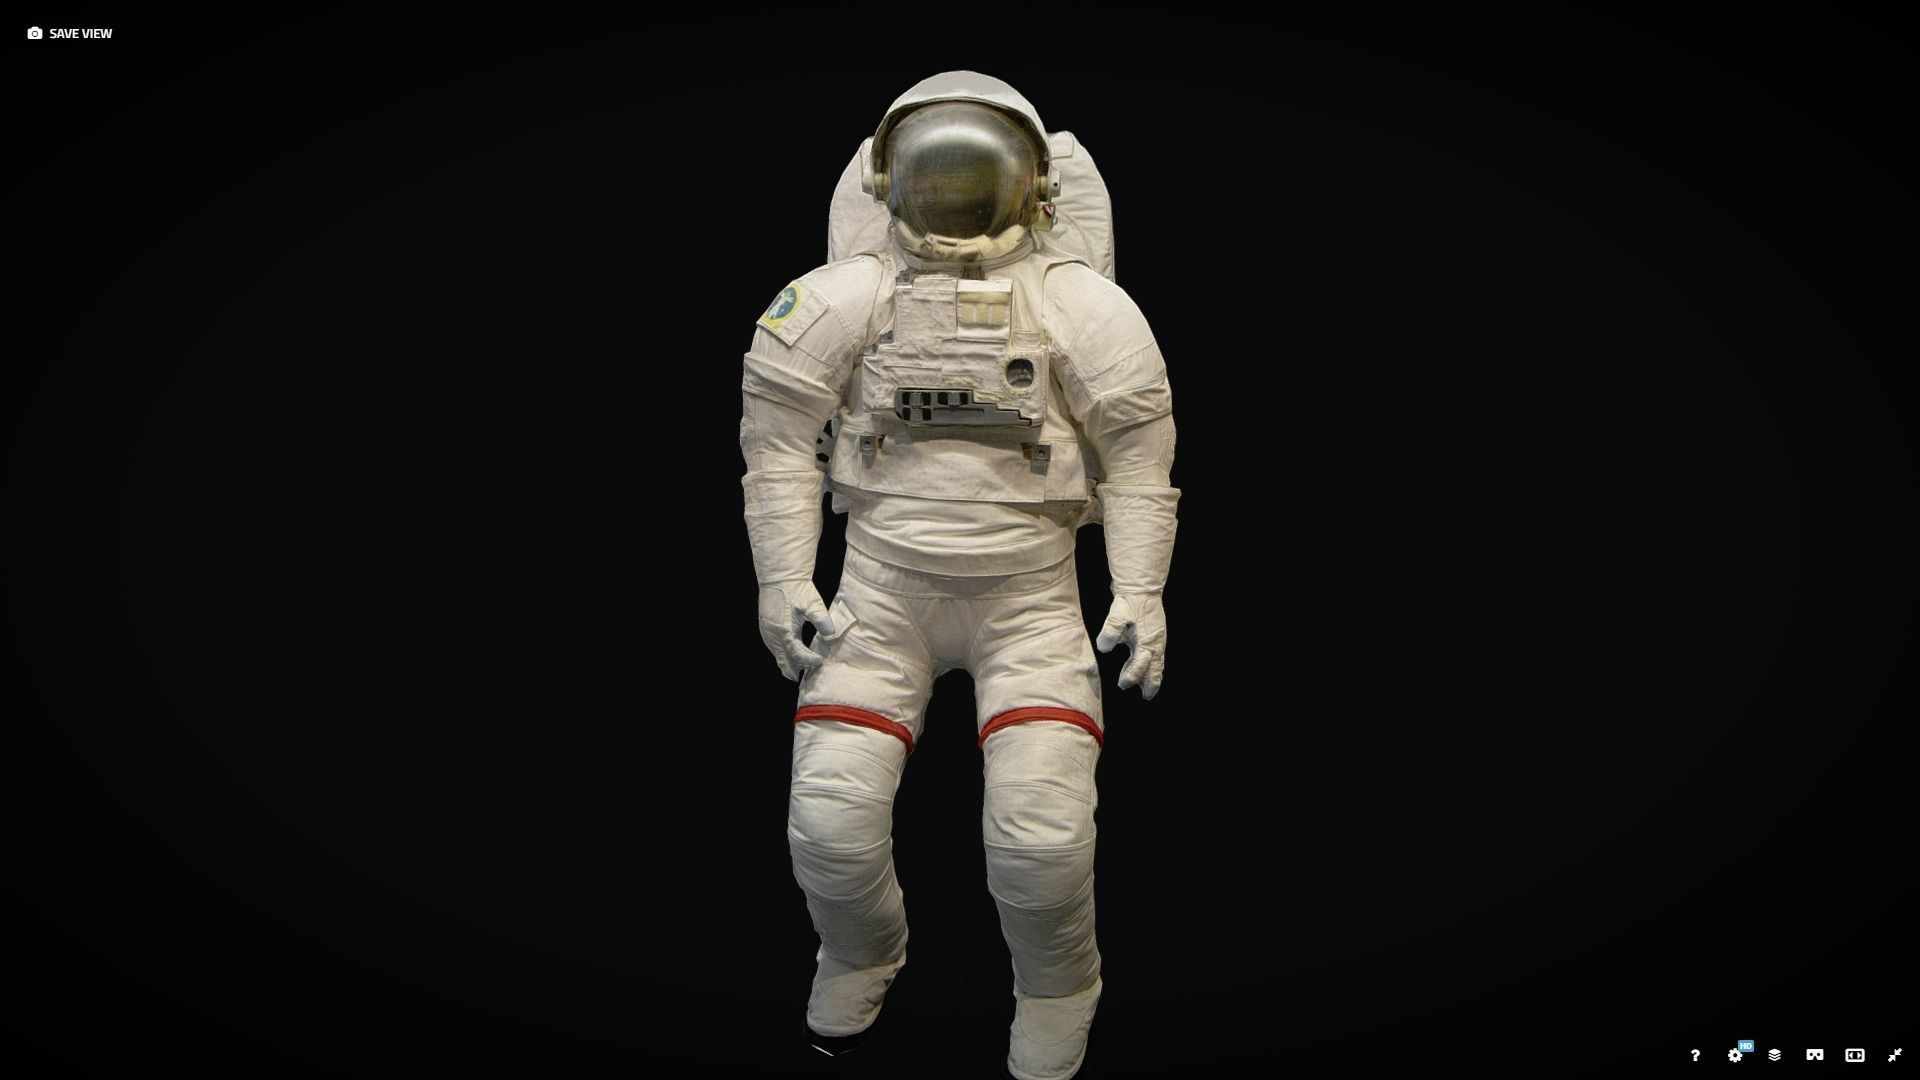 Space suit photogrammetry scan